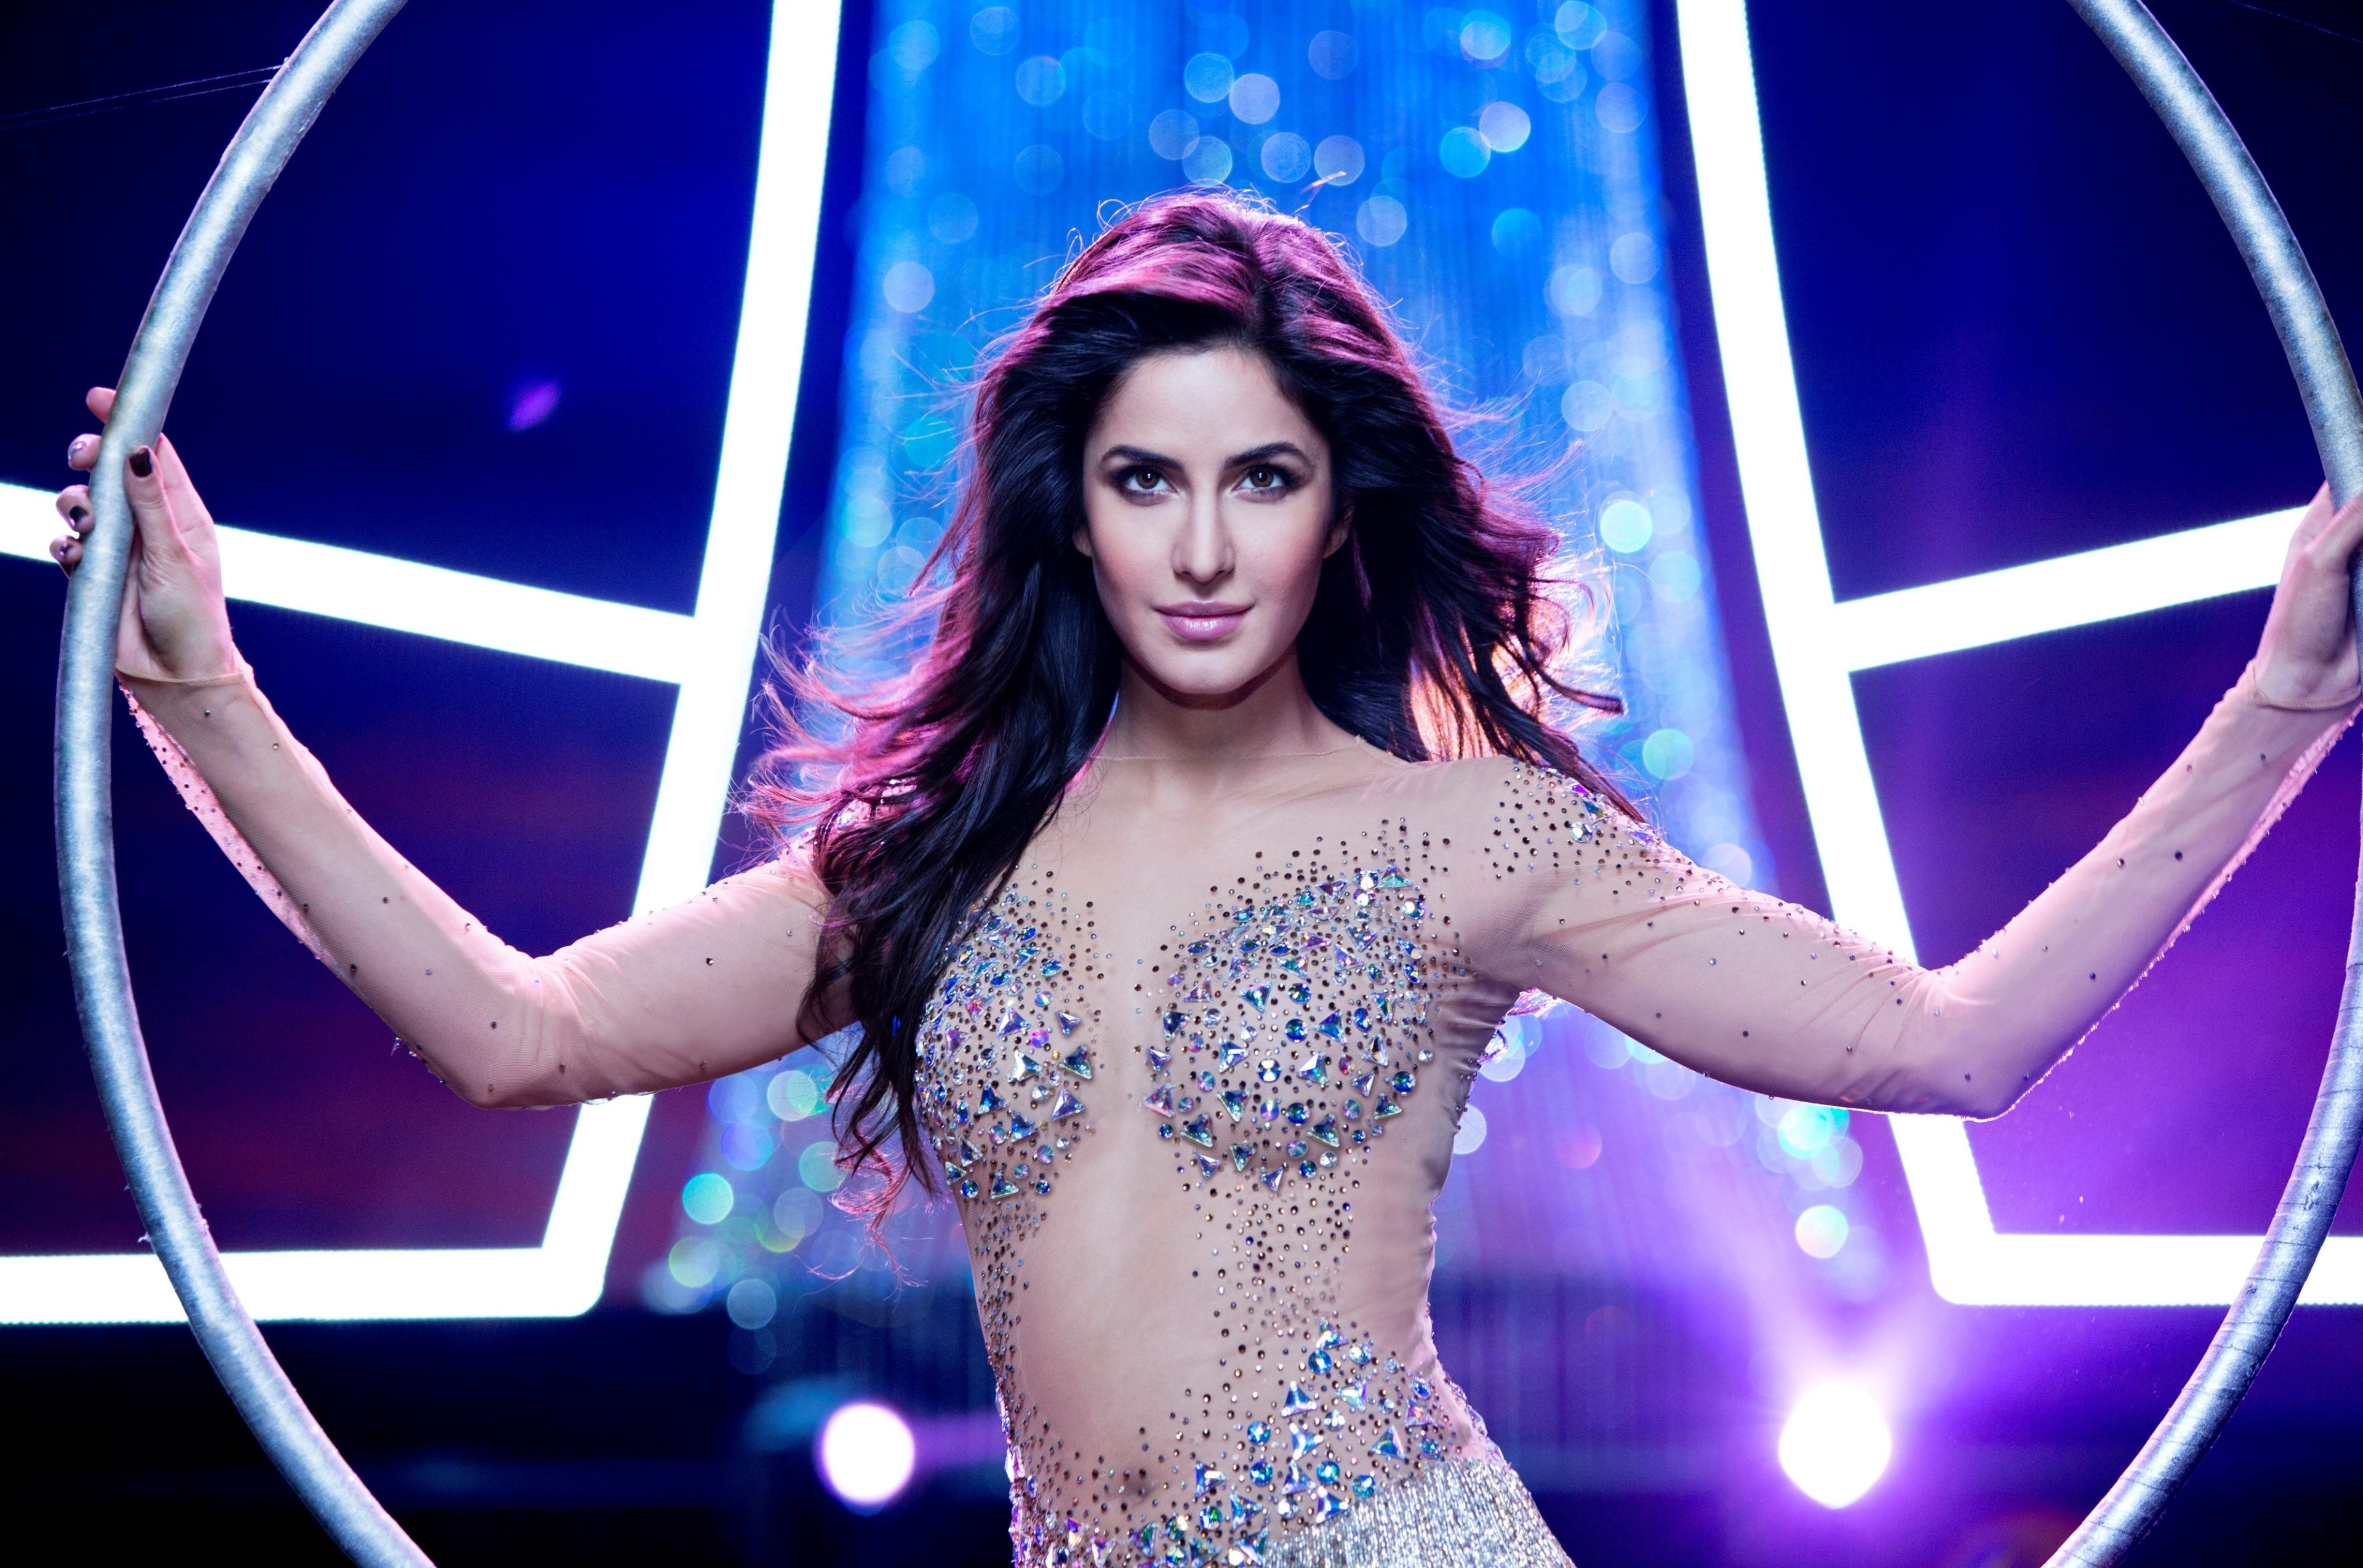 3840x2548 Katrina Kaif 4k Download Hd Wallpaper High Resolution Most Beautiful Bollywood Actress Katrina Kaif Hot Pics Katrina Kaif Bikini